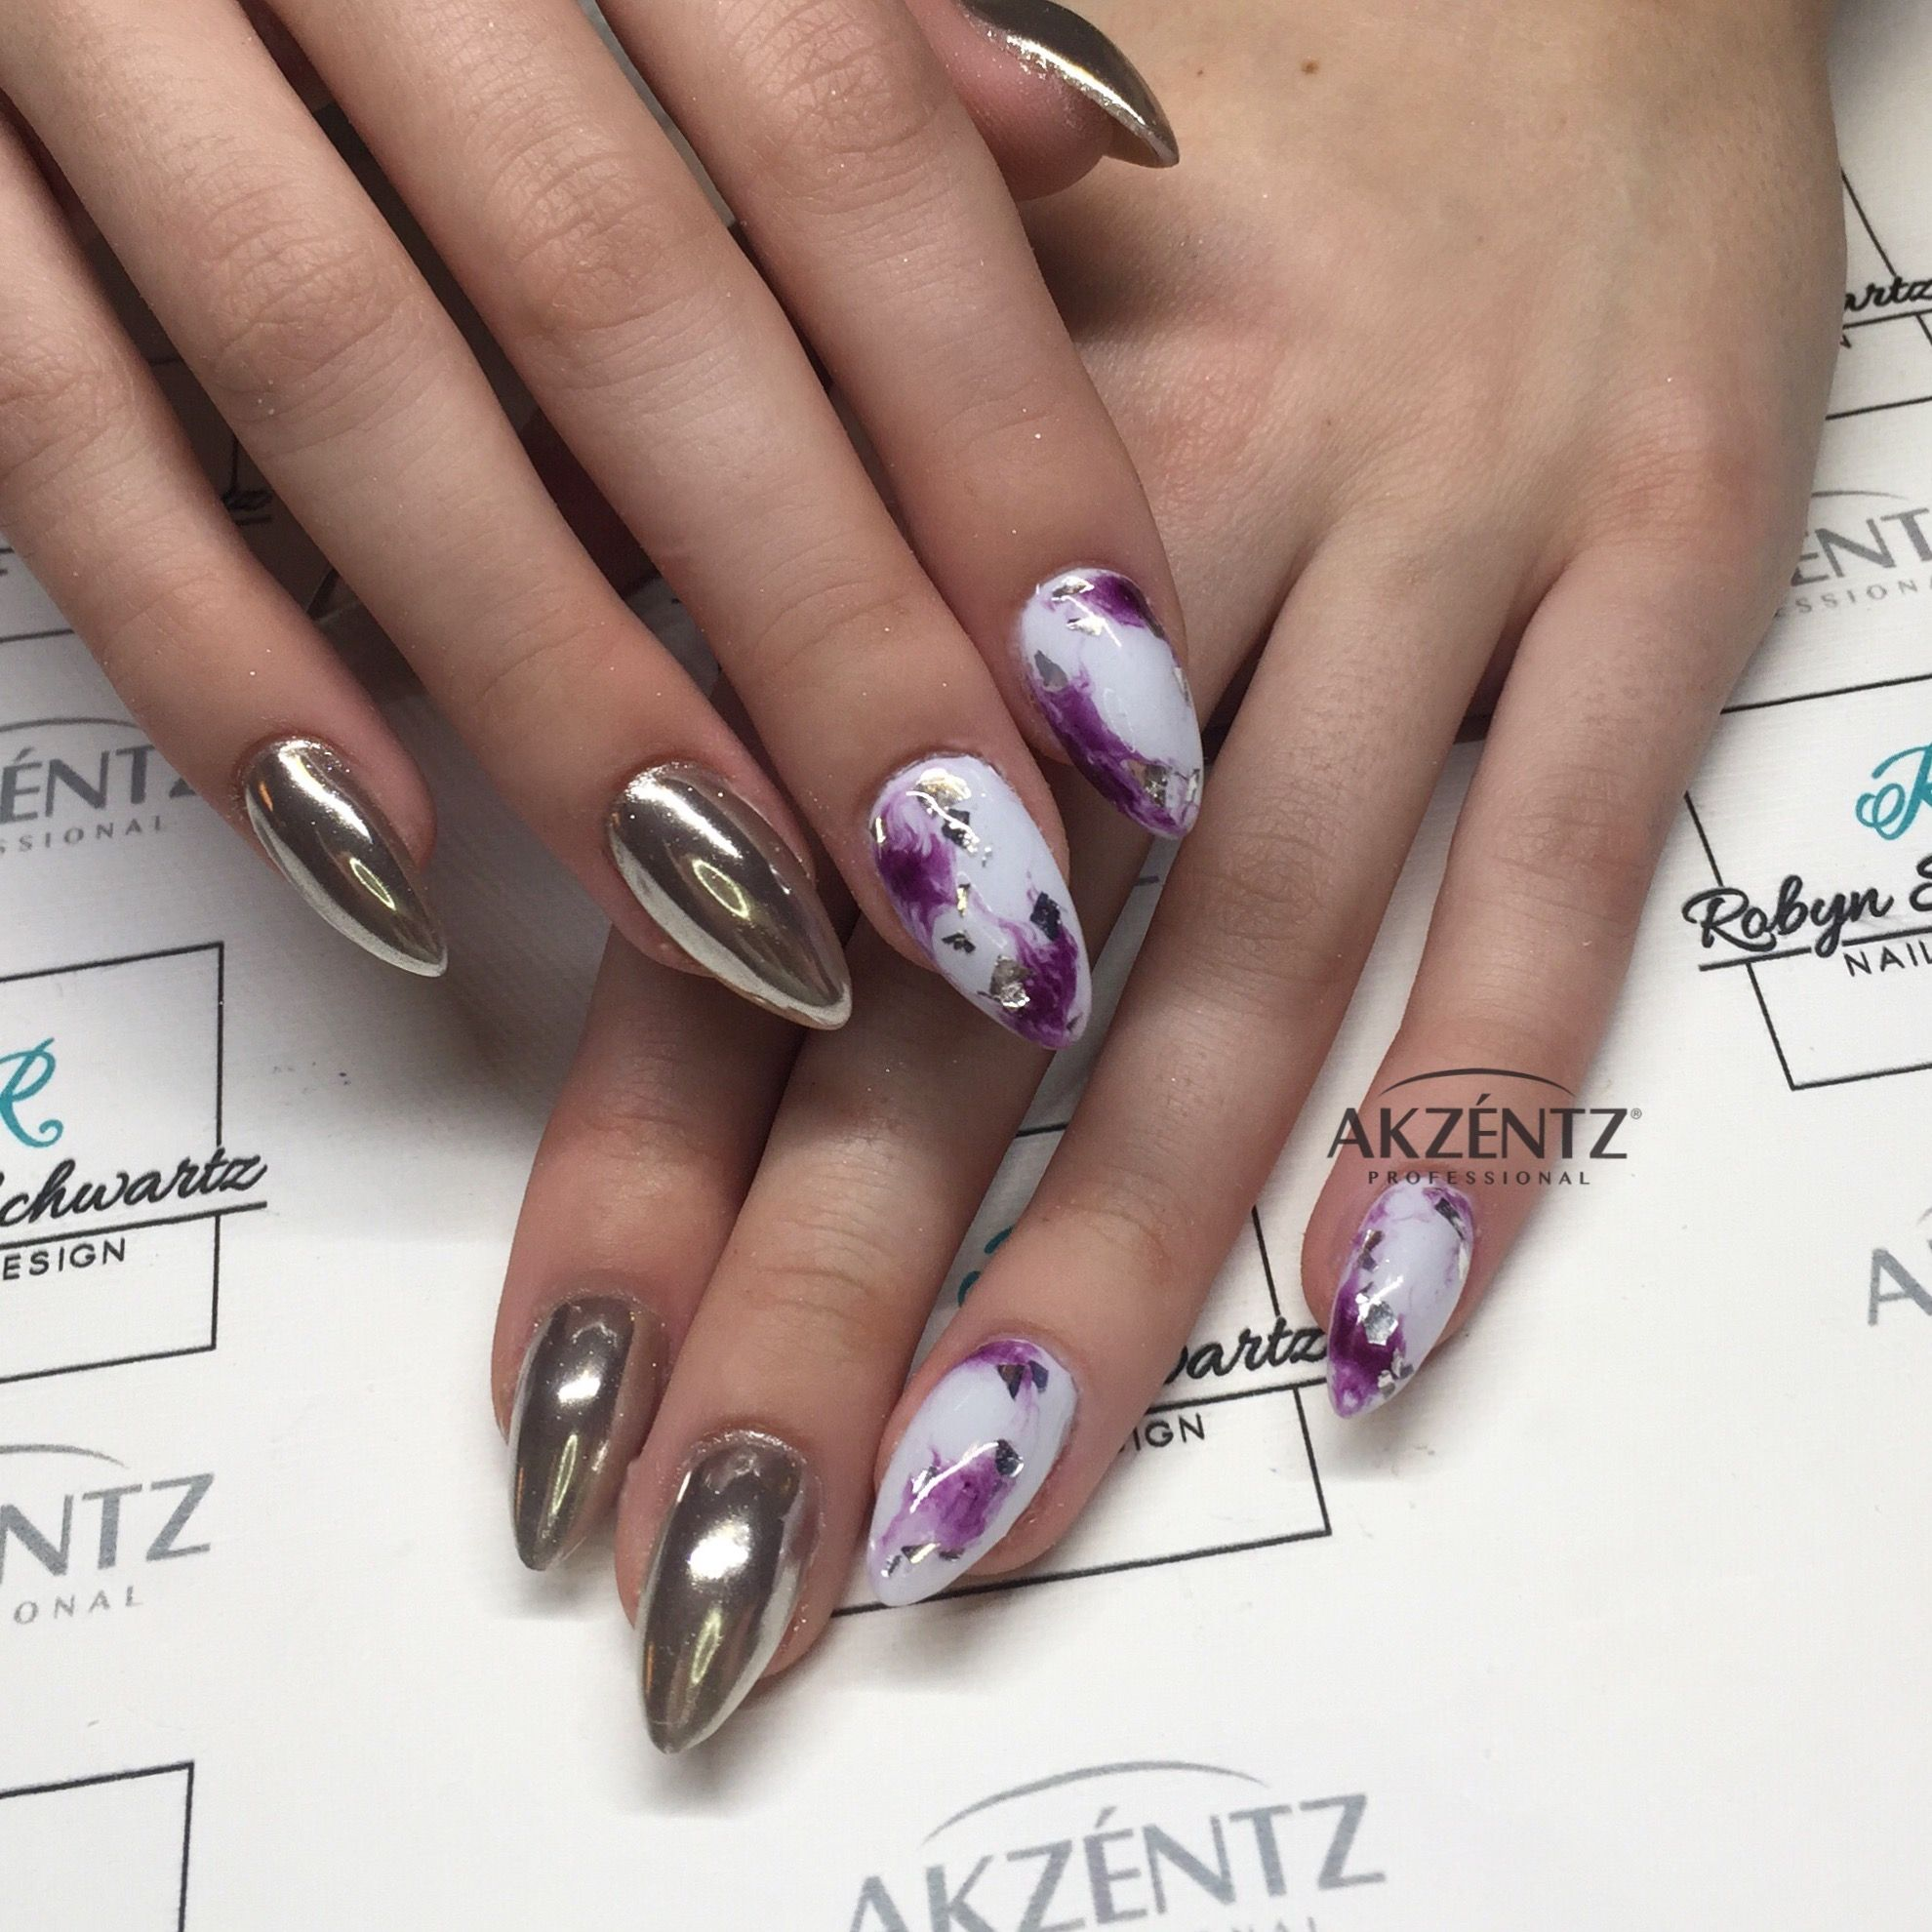 Marble and chrome, almond gel nails | More nails! | Pinterest ...